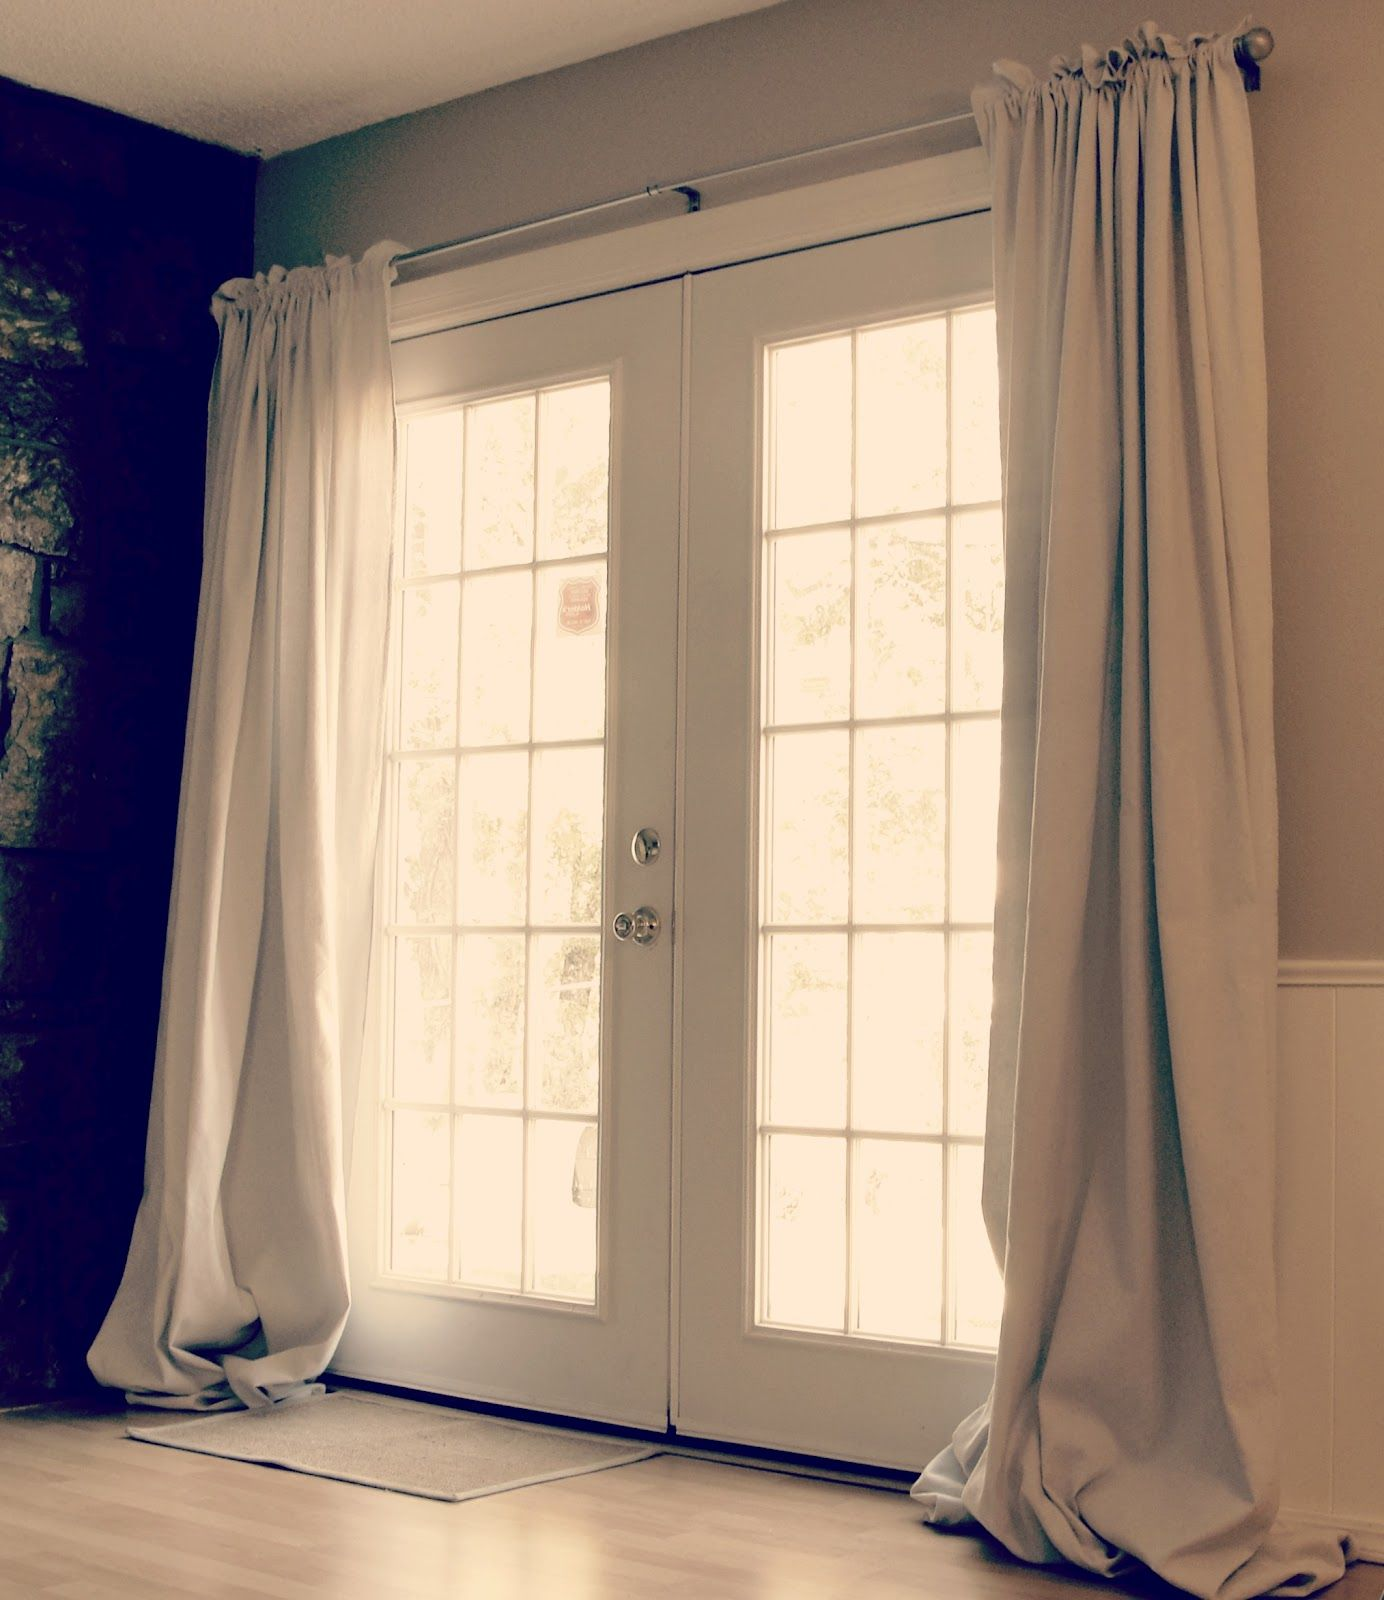 Drop Cloth Curtains 11 A Panel Been Planning To Do These For Awhile For Our Bedroom